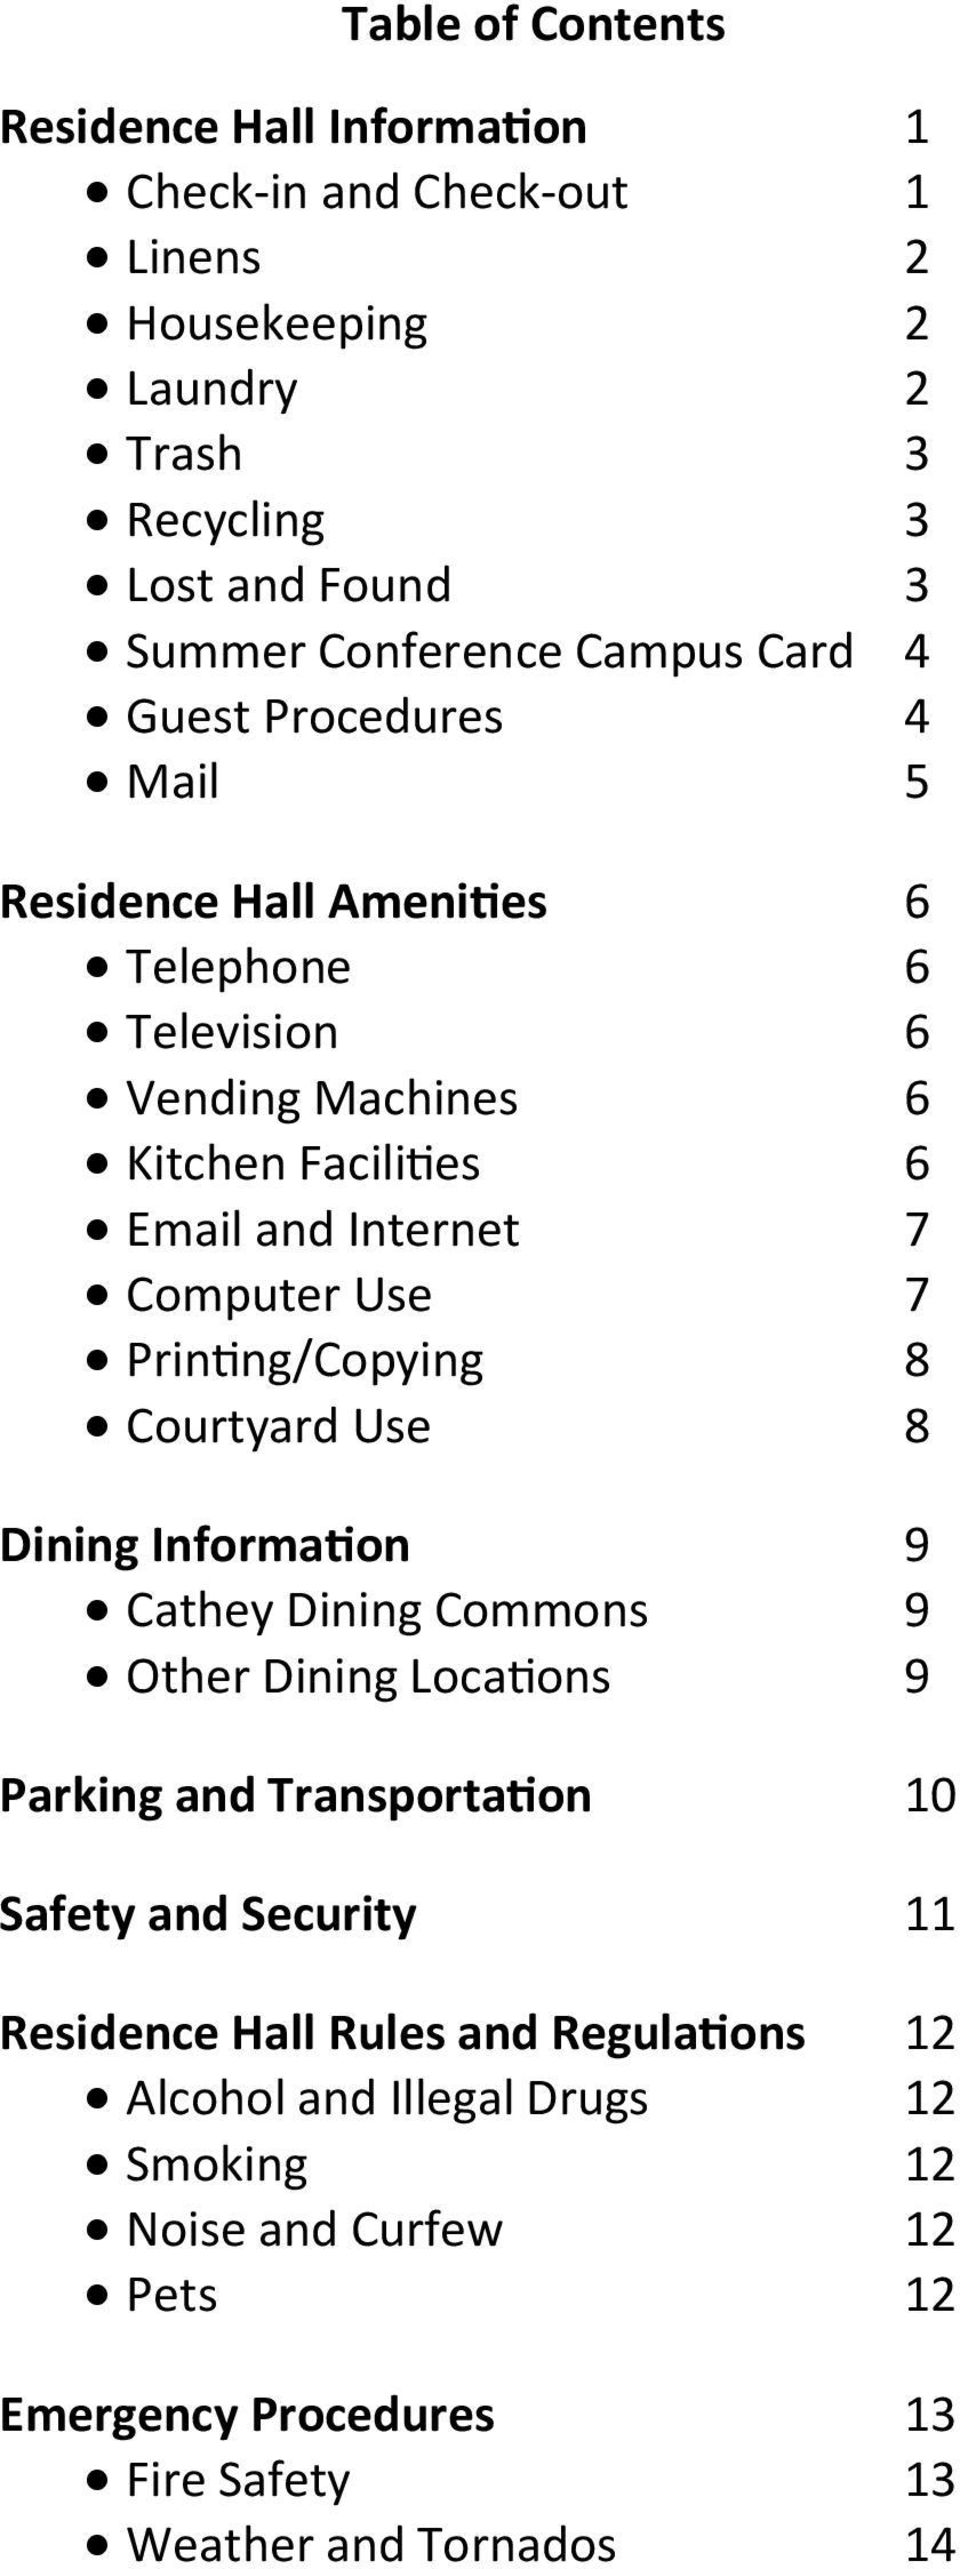 Use 7 Printing/Copying 8 Courtyard Use 8 Dining Information 9 Cathey Dining Commons 9 Other Dining Locations 9 Parking and Transportation 10 Safety and Security 11